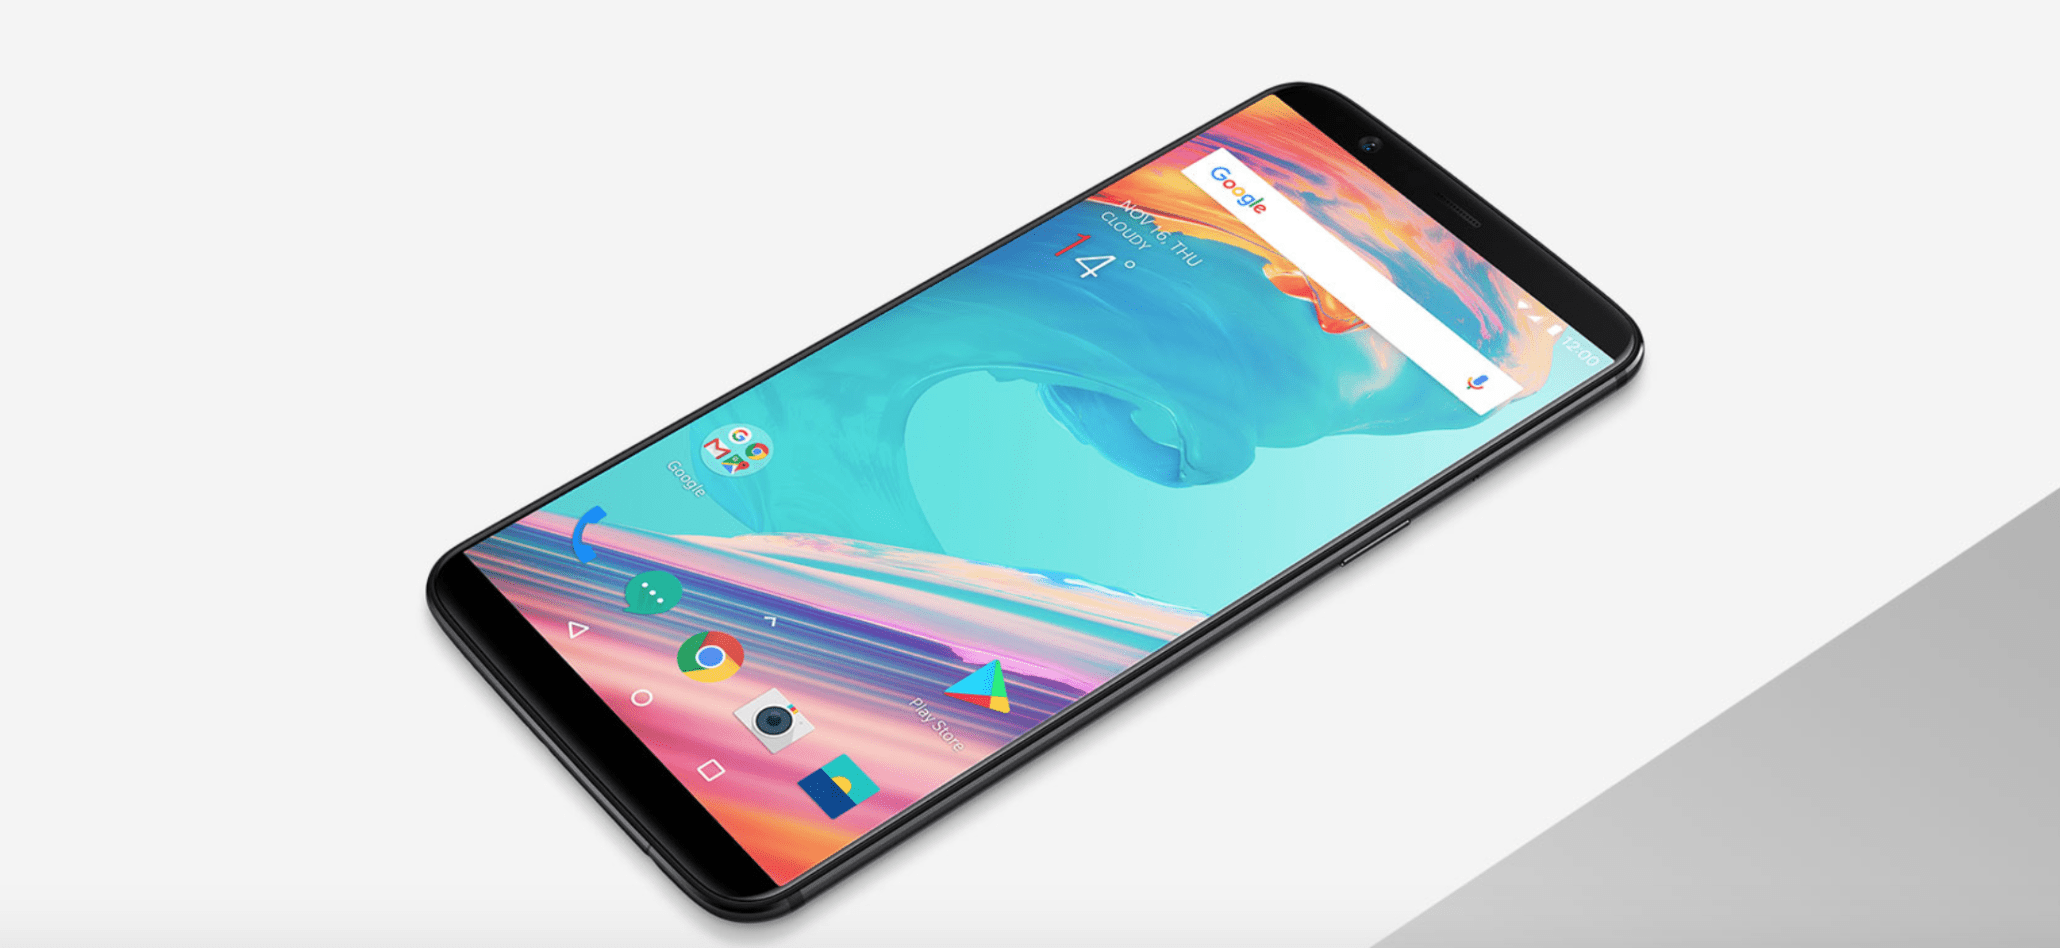 D Deals The Best Smartphone Deals That You D Want Are Here Oneplus 5t